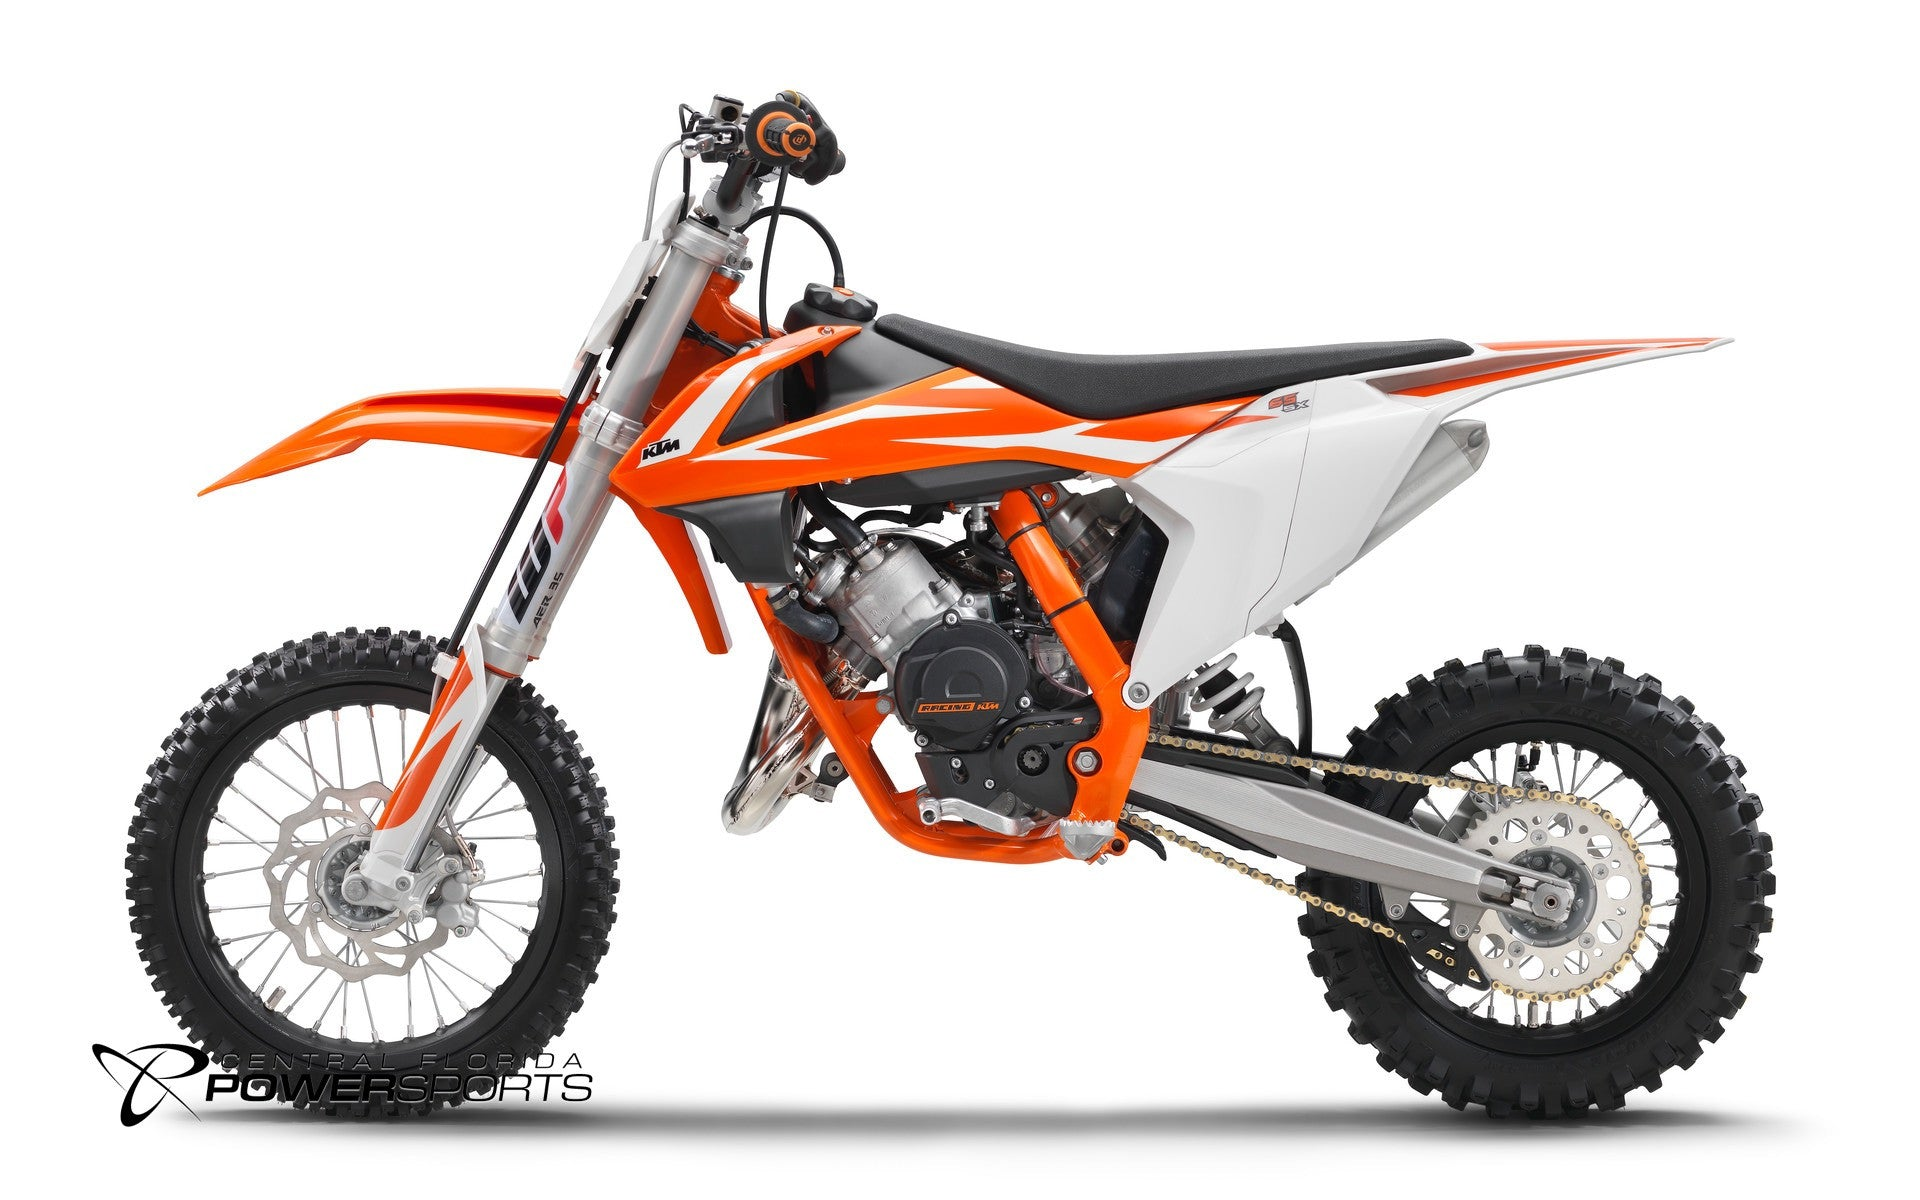 2018 ktm 65 sx motorcycle for young pilots 8 to 12 y o orlando dealer central florida powersports. Black Bedroom Furniture Sets. Home Design Ideas